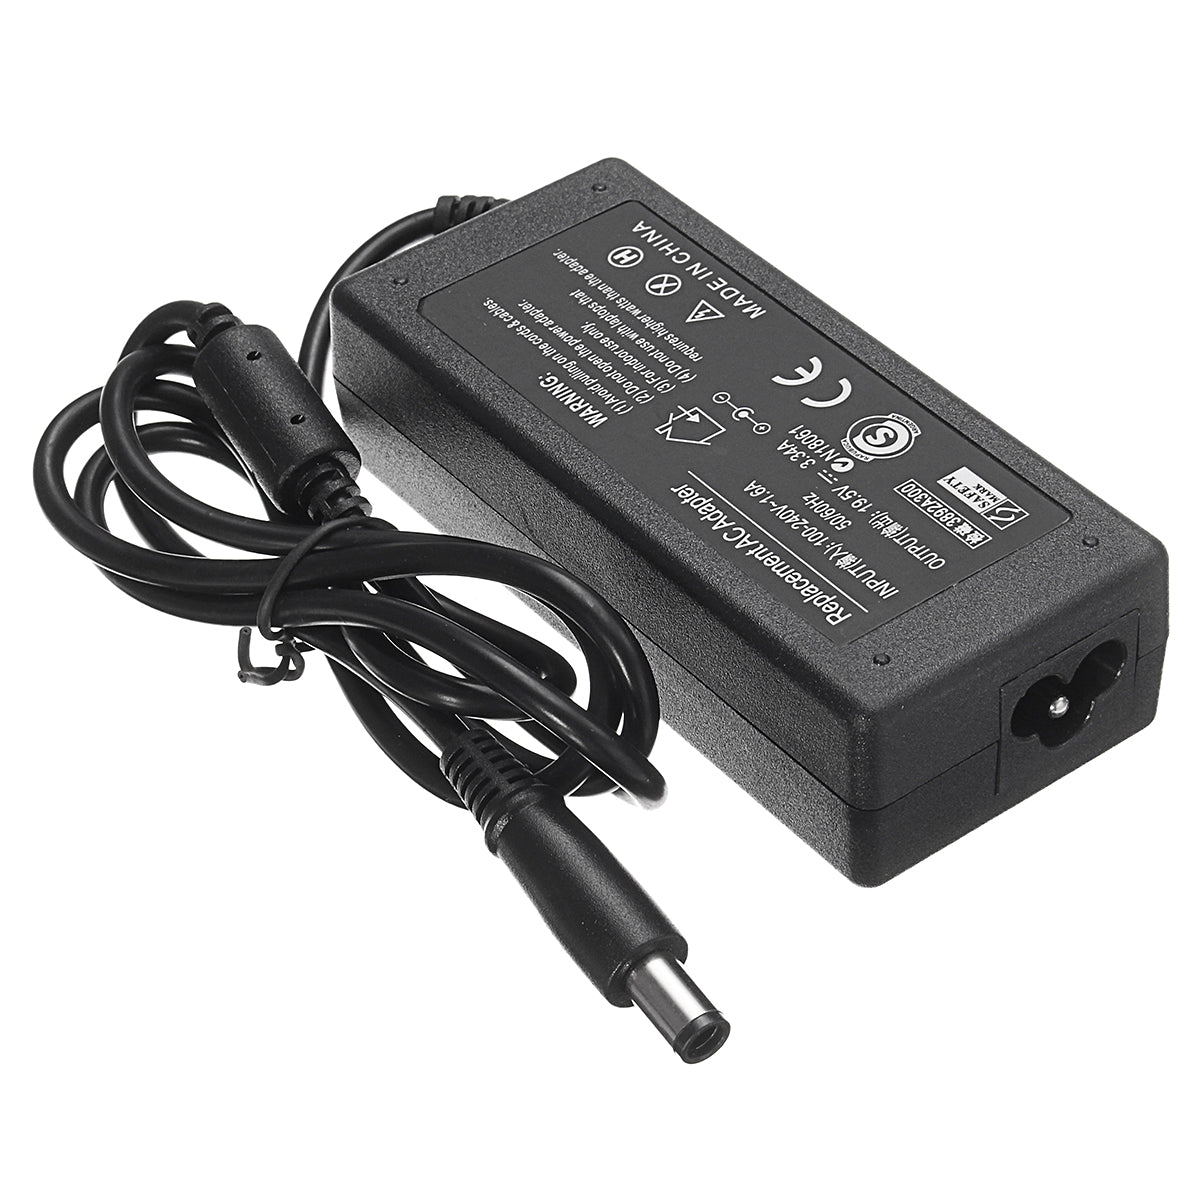 AC Adapter Charger Power for Dell Inspiron 1525 1526 1545 PA-12 Power Cord Laptop